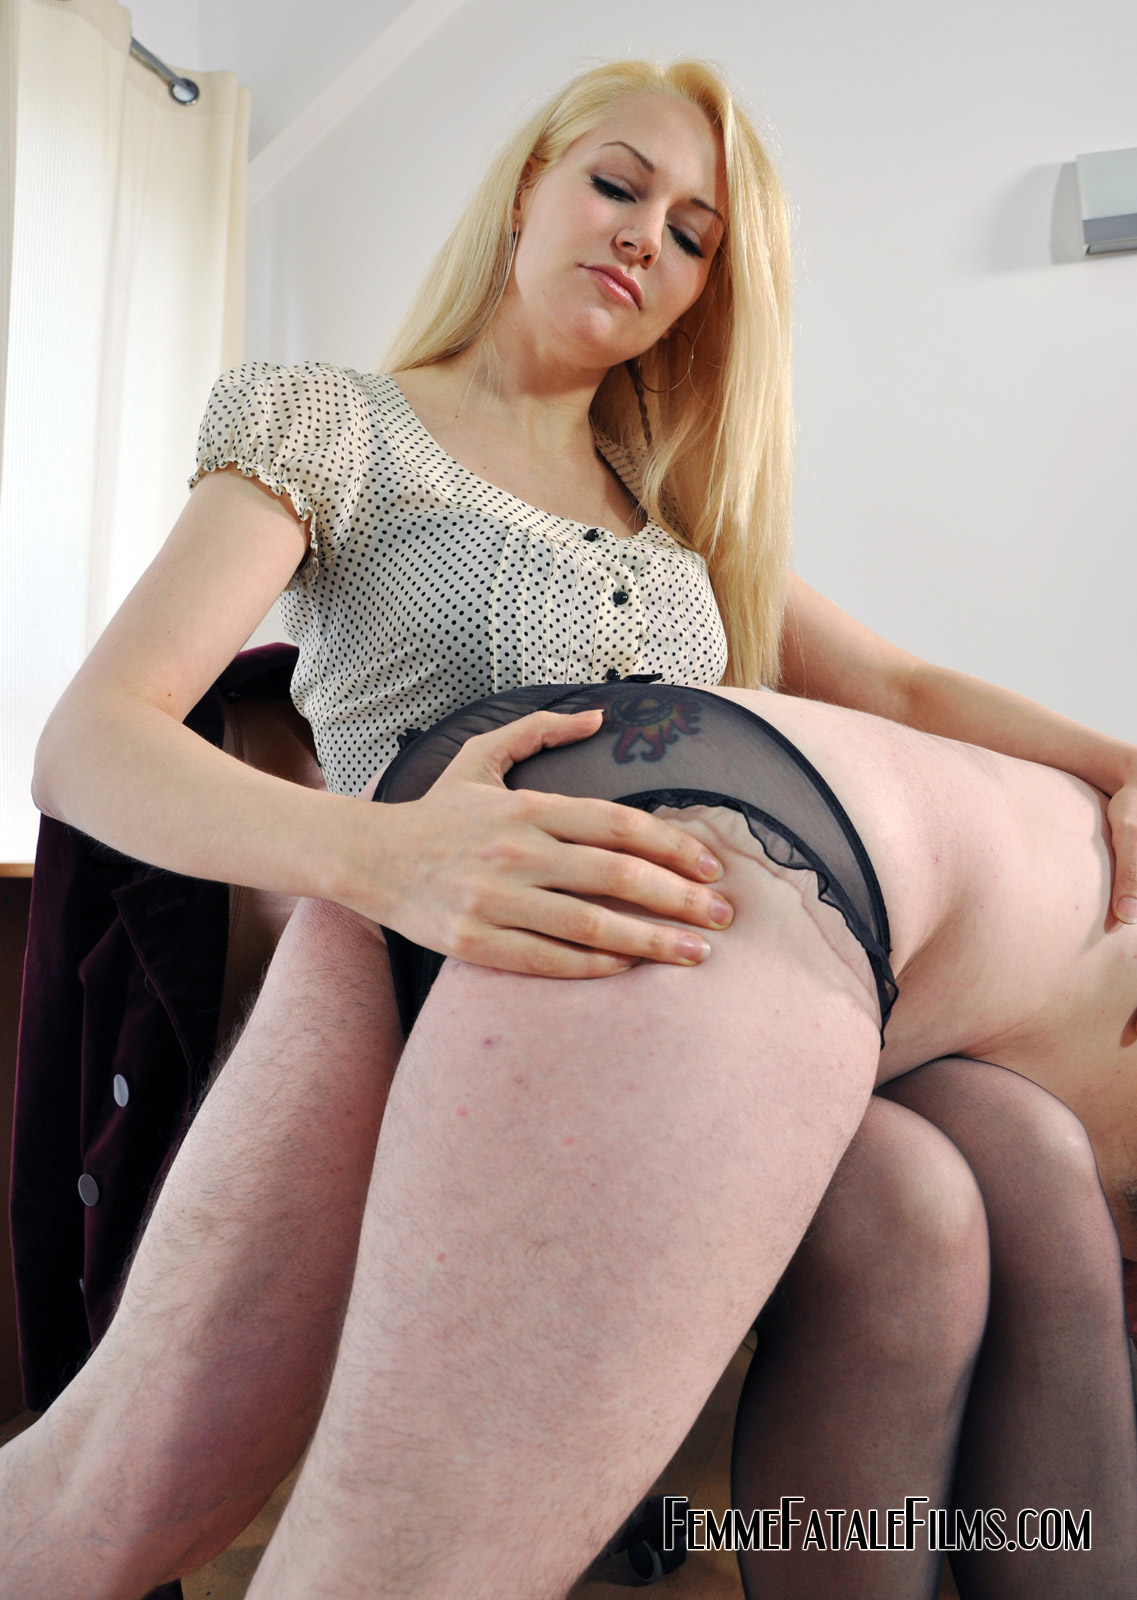 Blonde milf in stockings gets a spanking